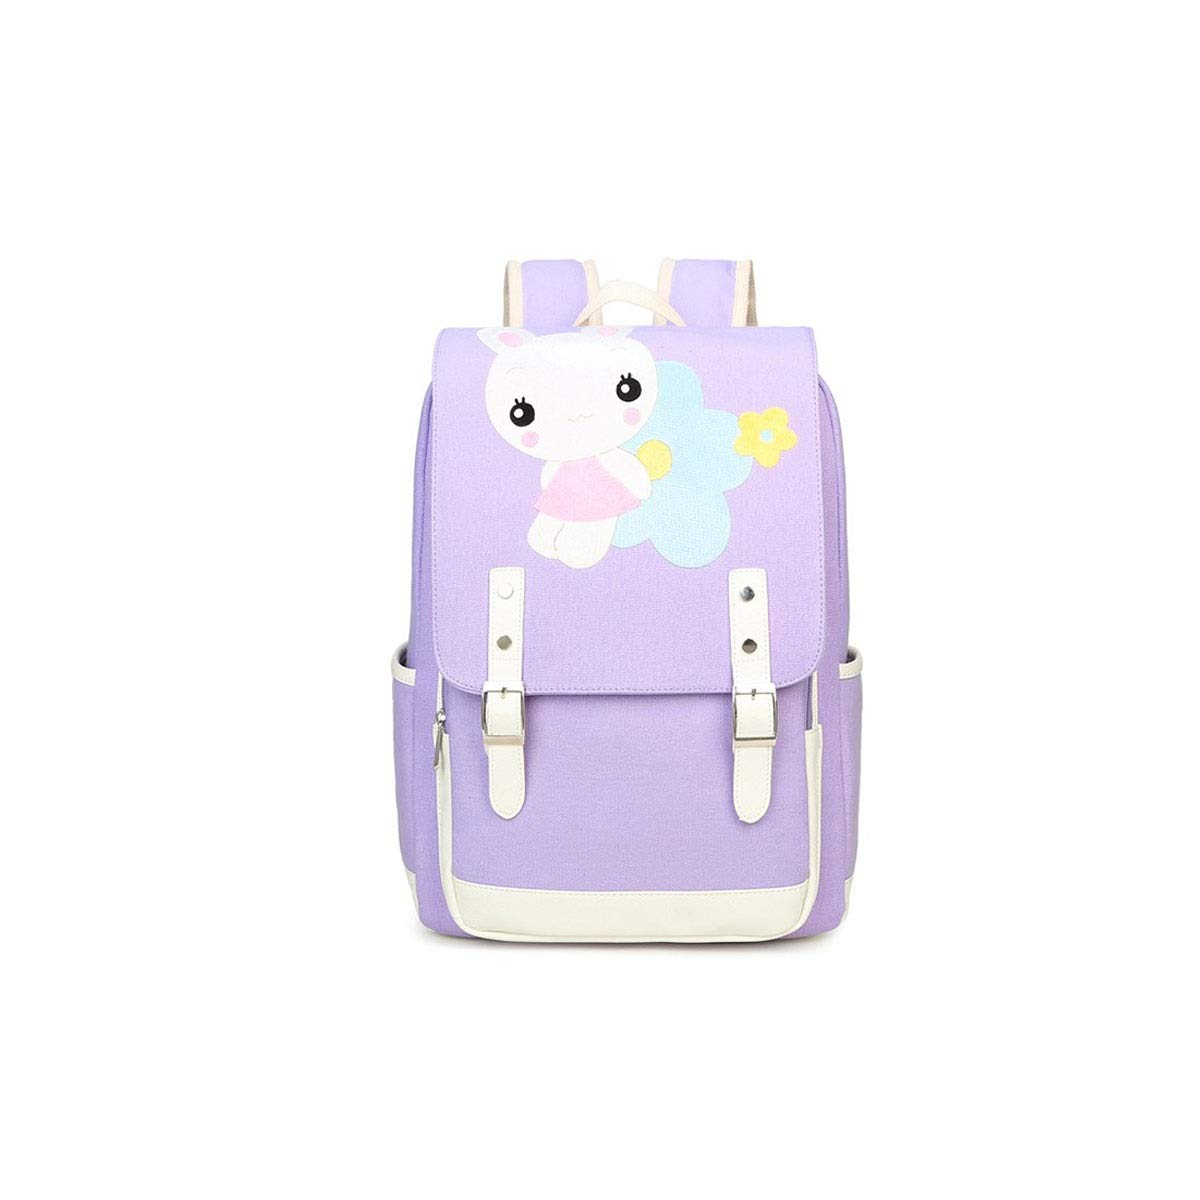 TONGBOSHI Simple Fashion Backpack, School Bag Primary School Student, Girl Leisure Travel Travel Backpack, Lightweight Backpack (Color : Purple, Size : S)